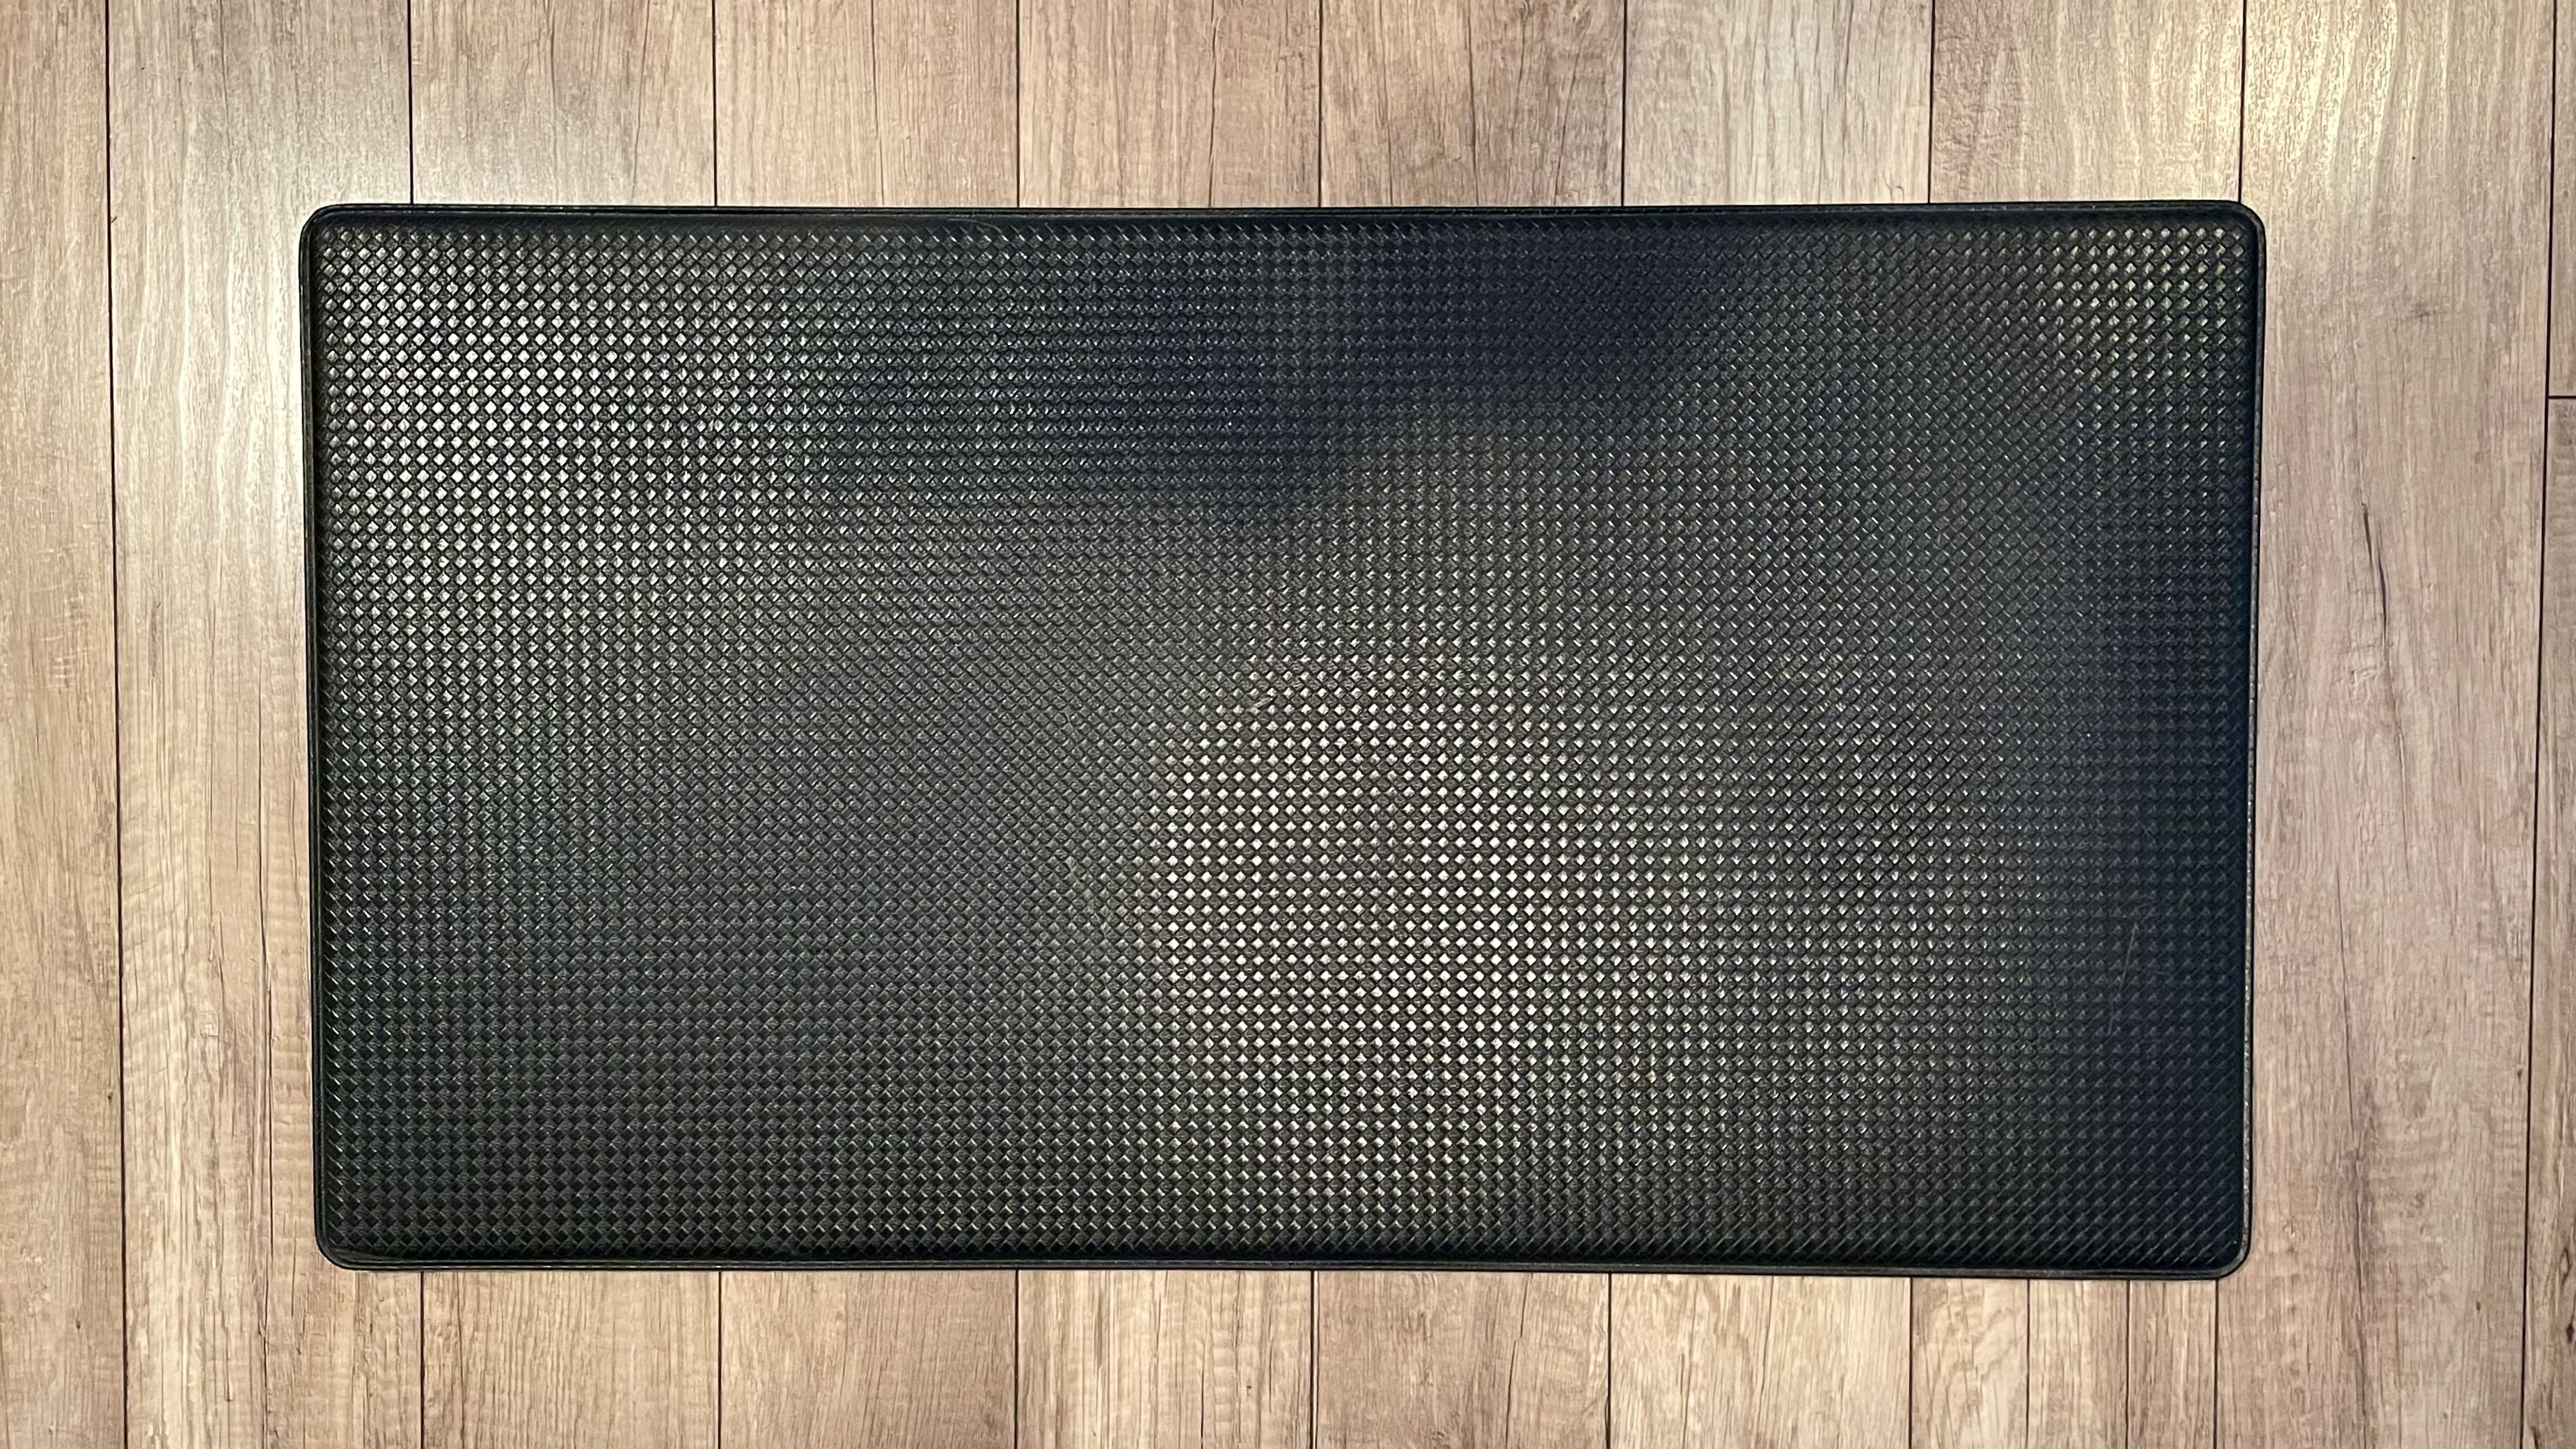 Black Desk Mat that I use while standing on wood floor.